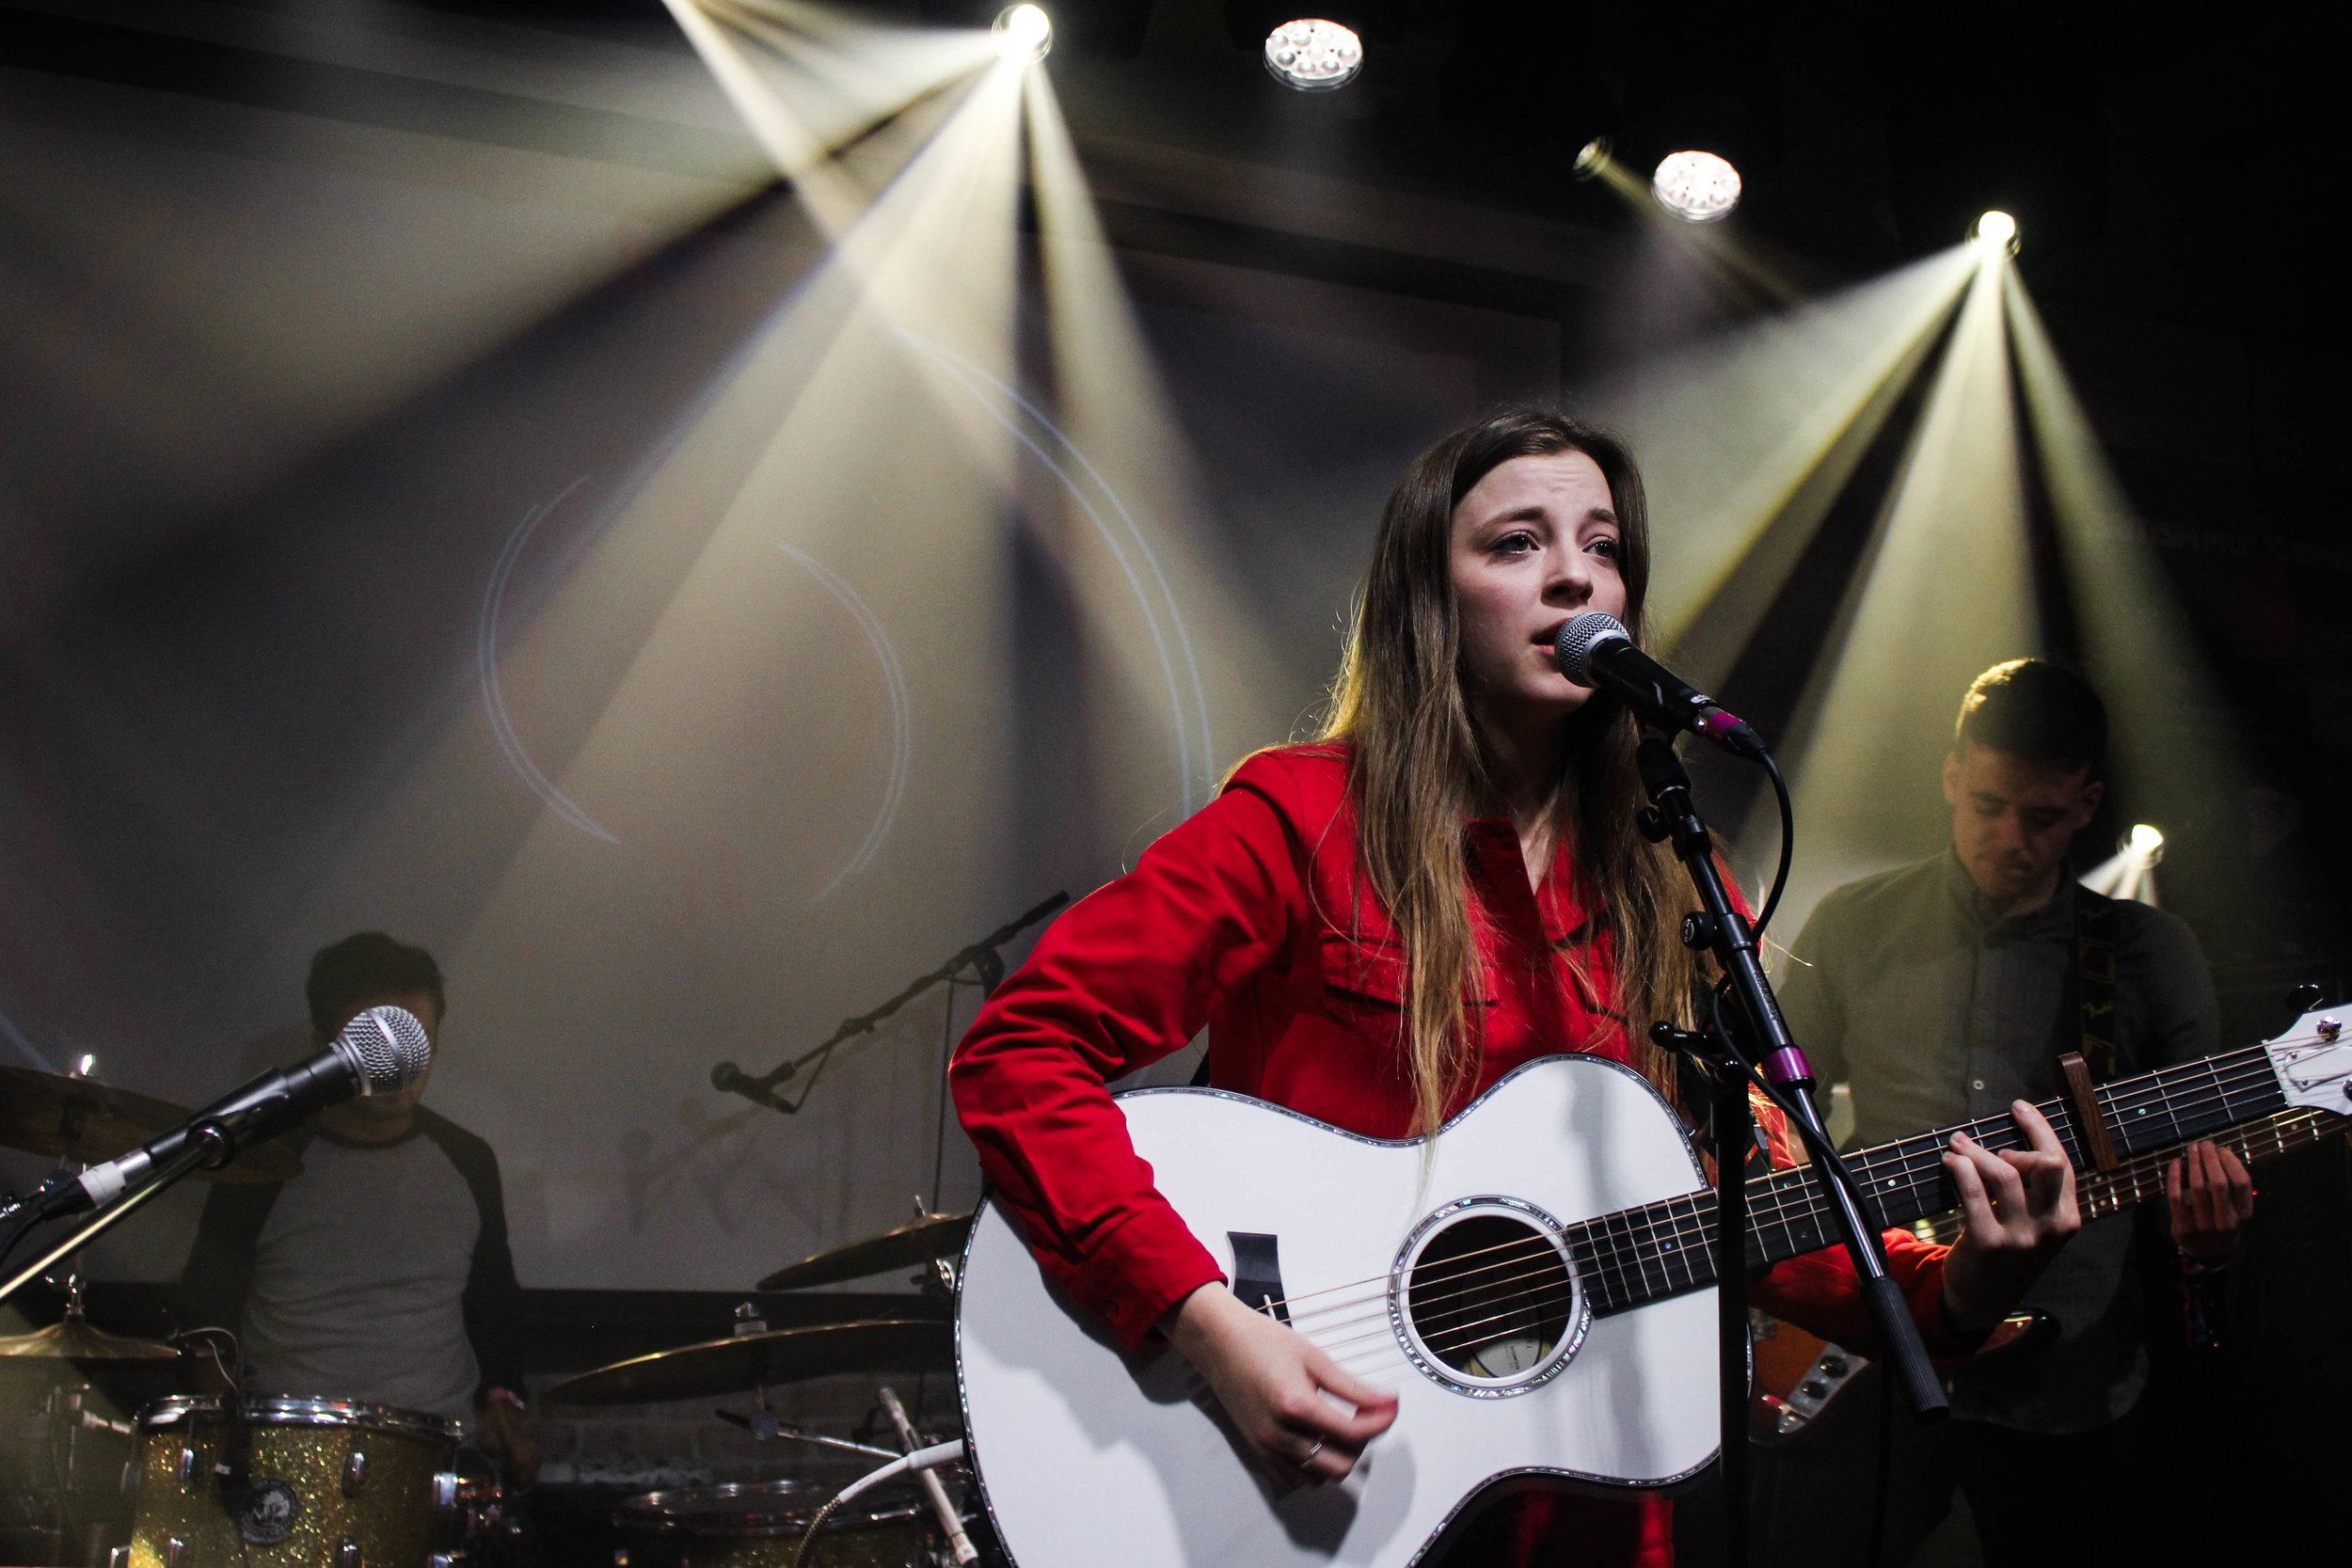 Jade Bird at SXSW - Photo © Concentus Music - Reproduction without permission not permitted